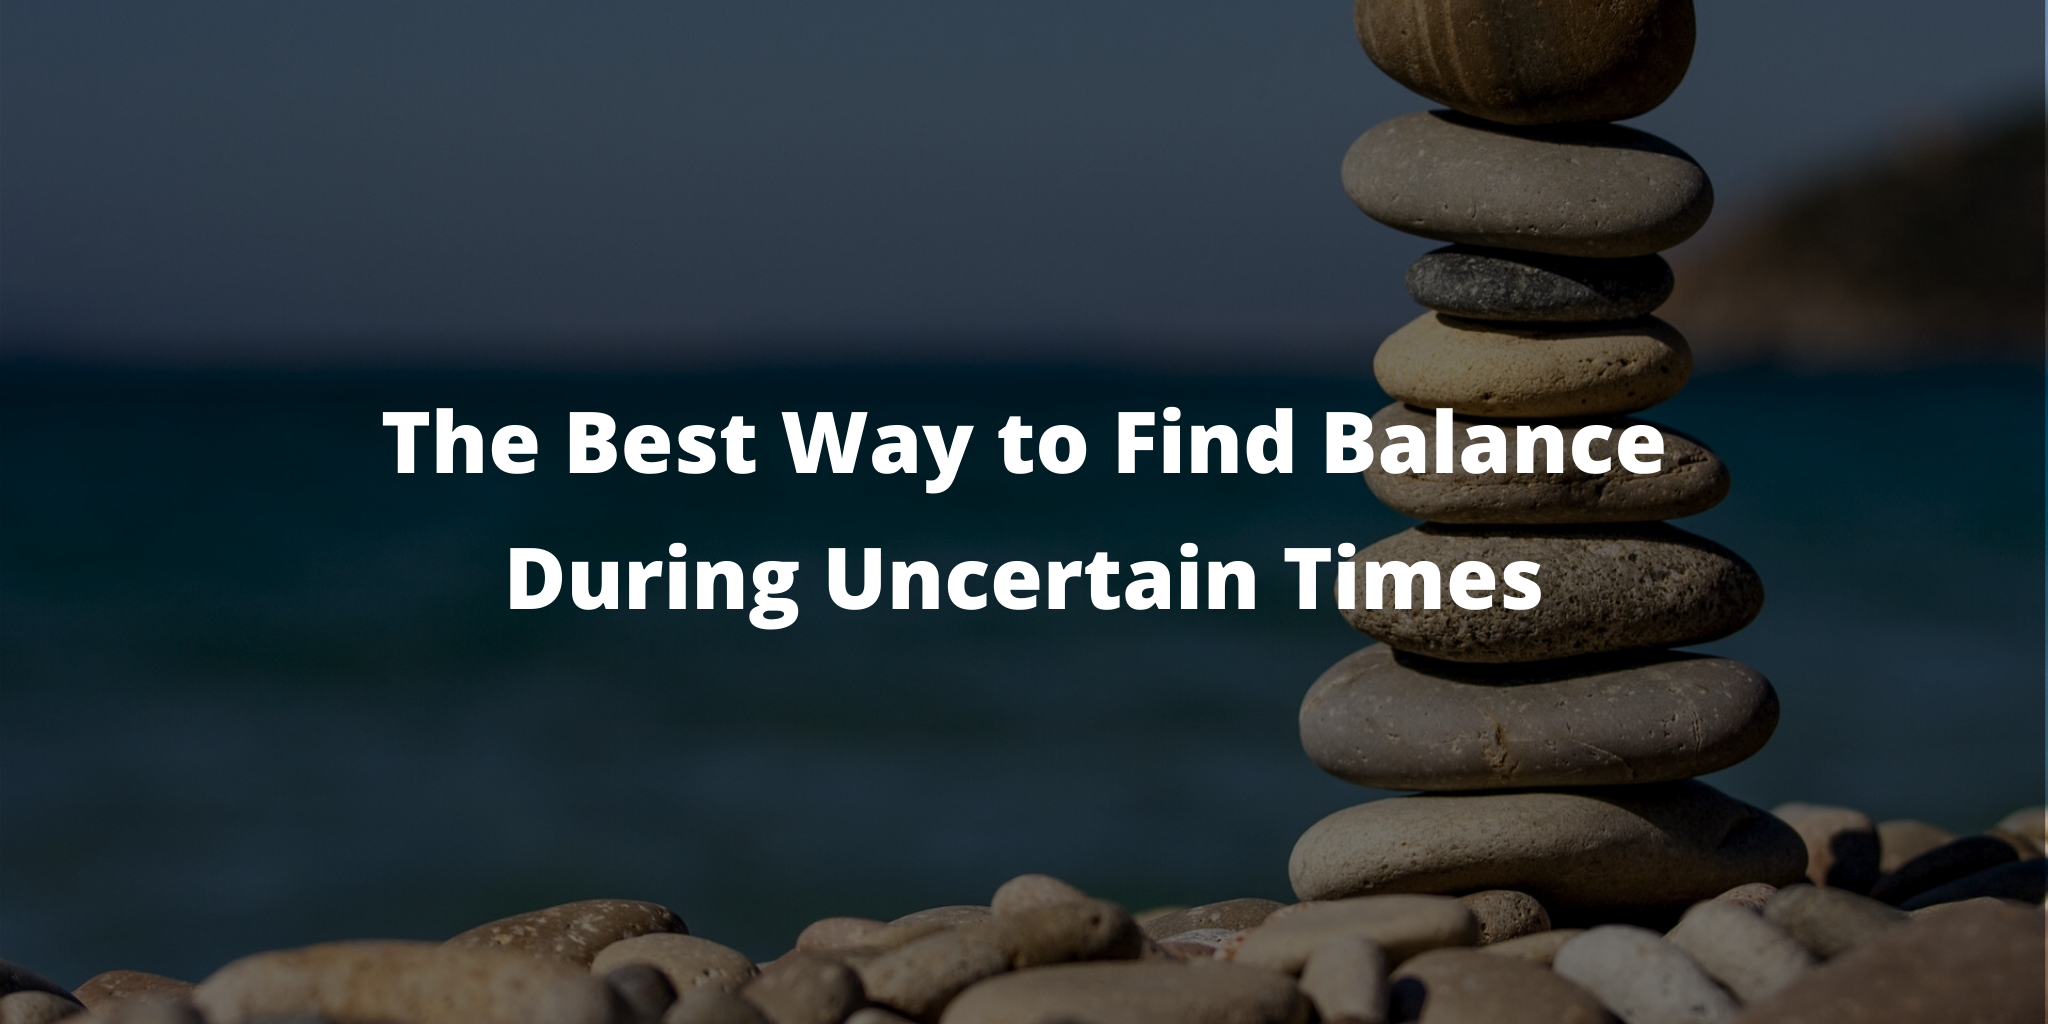 The Best Way to Find Balance During Uncertain Times